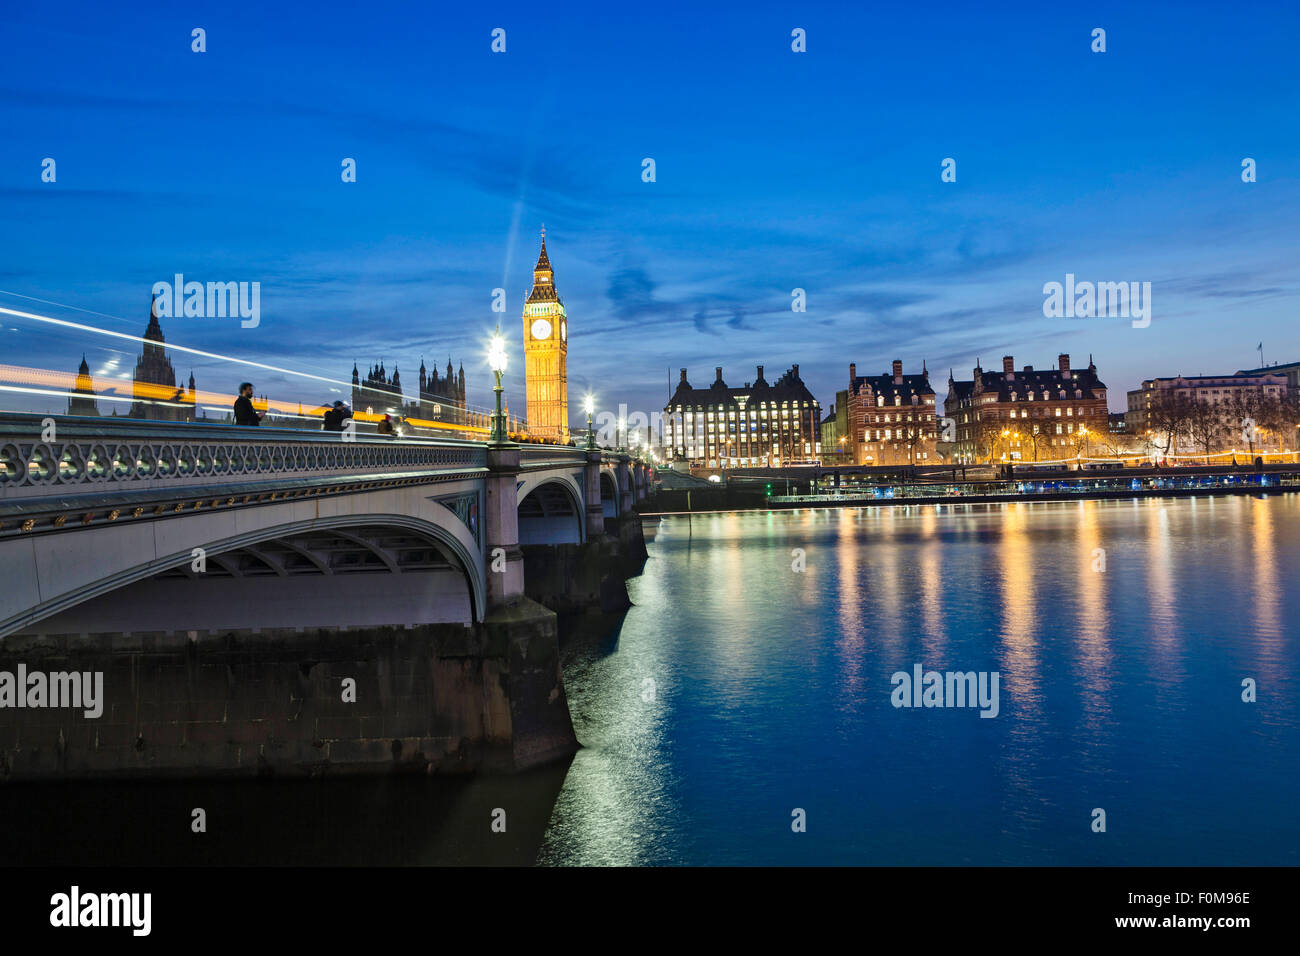 Westminster Bridge and the Neo-gothic Houses of Parliament by Charles Barry and Augustus Pugin, at night time - Stock Image